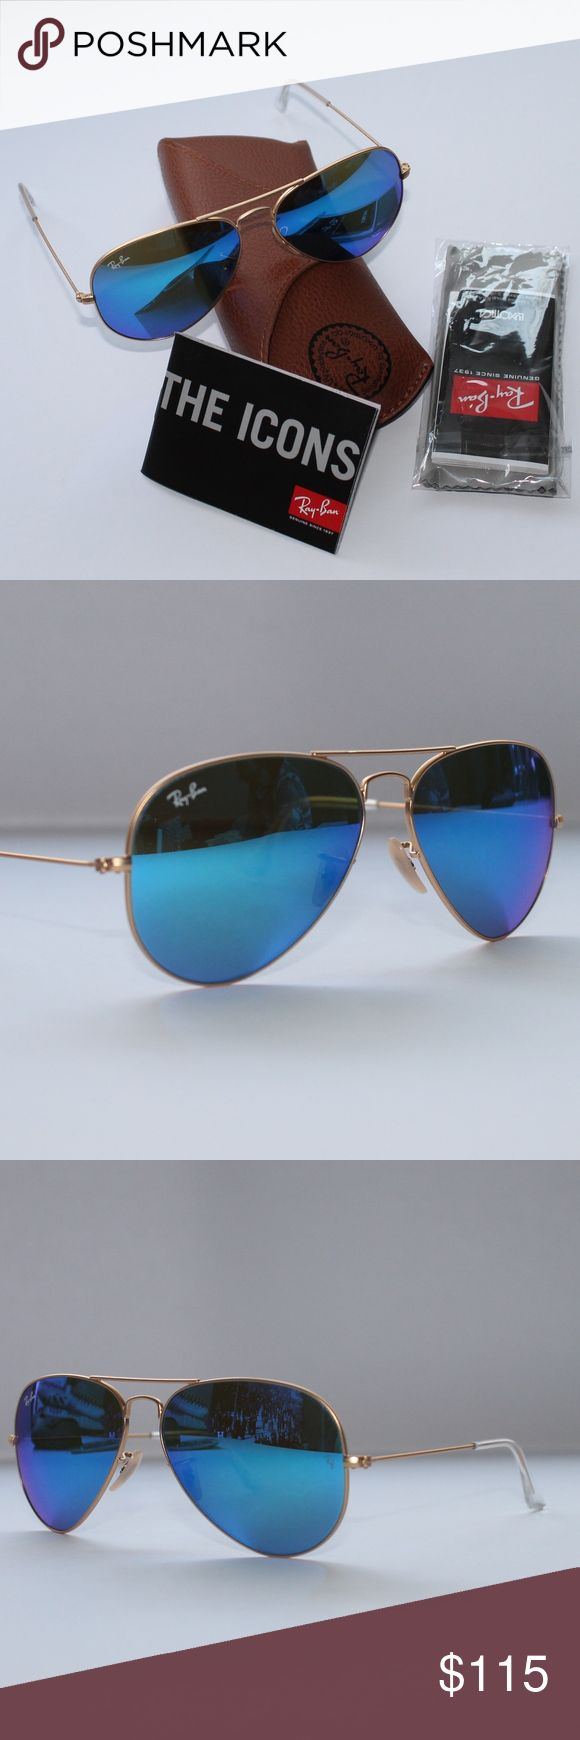 Ray-Ban Aviator Matte Gold  Frame Blue Mirror Brand New 100% Authentic ,Ray Ban RB3025 112/17 58 Sunglasses Matte Gold  Frame Blue Mirror Ray-Ban Accessories Sunglasses